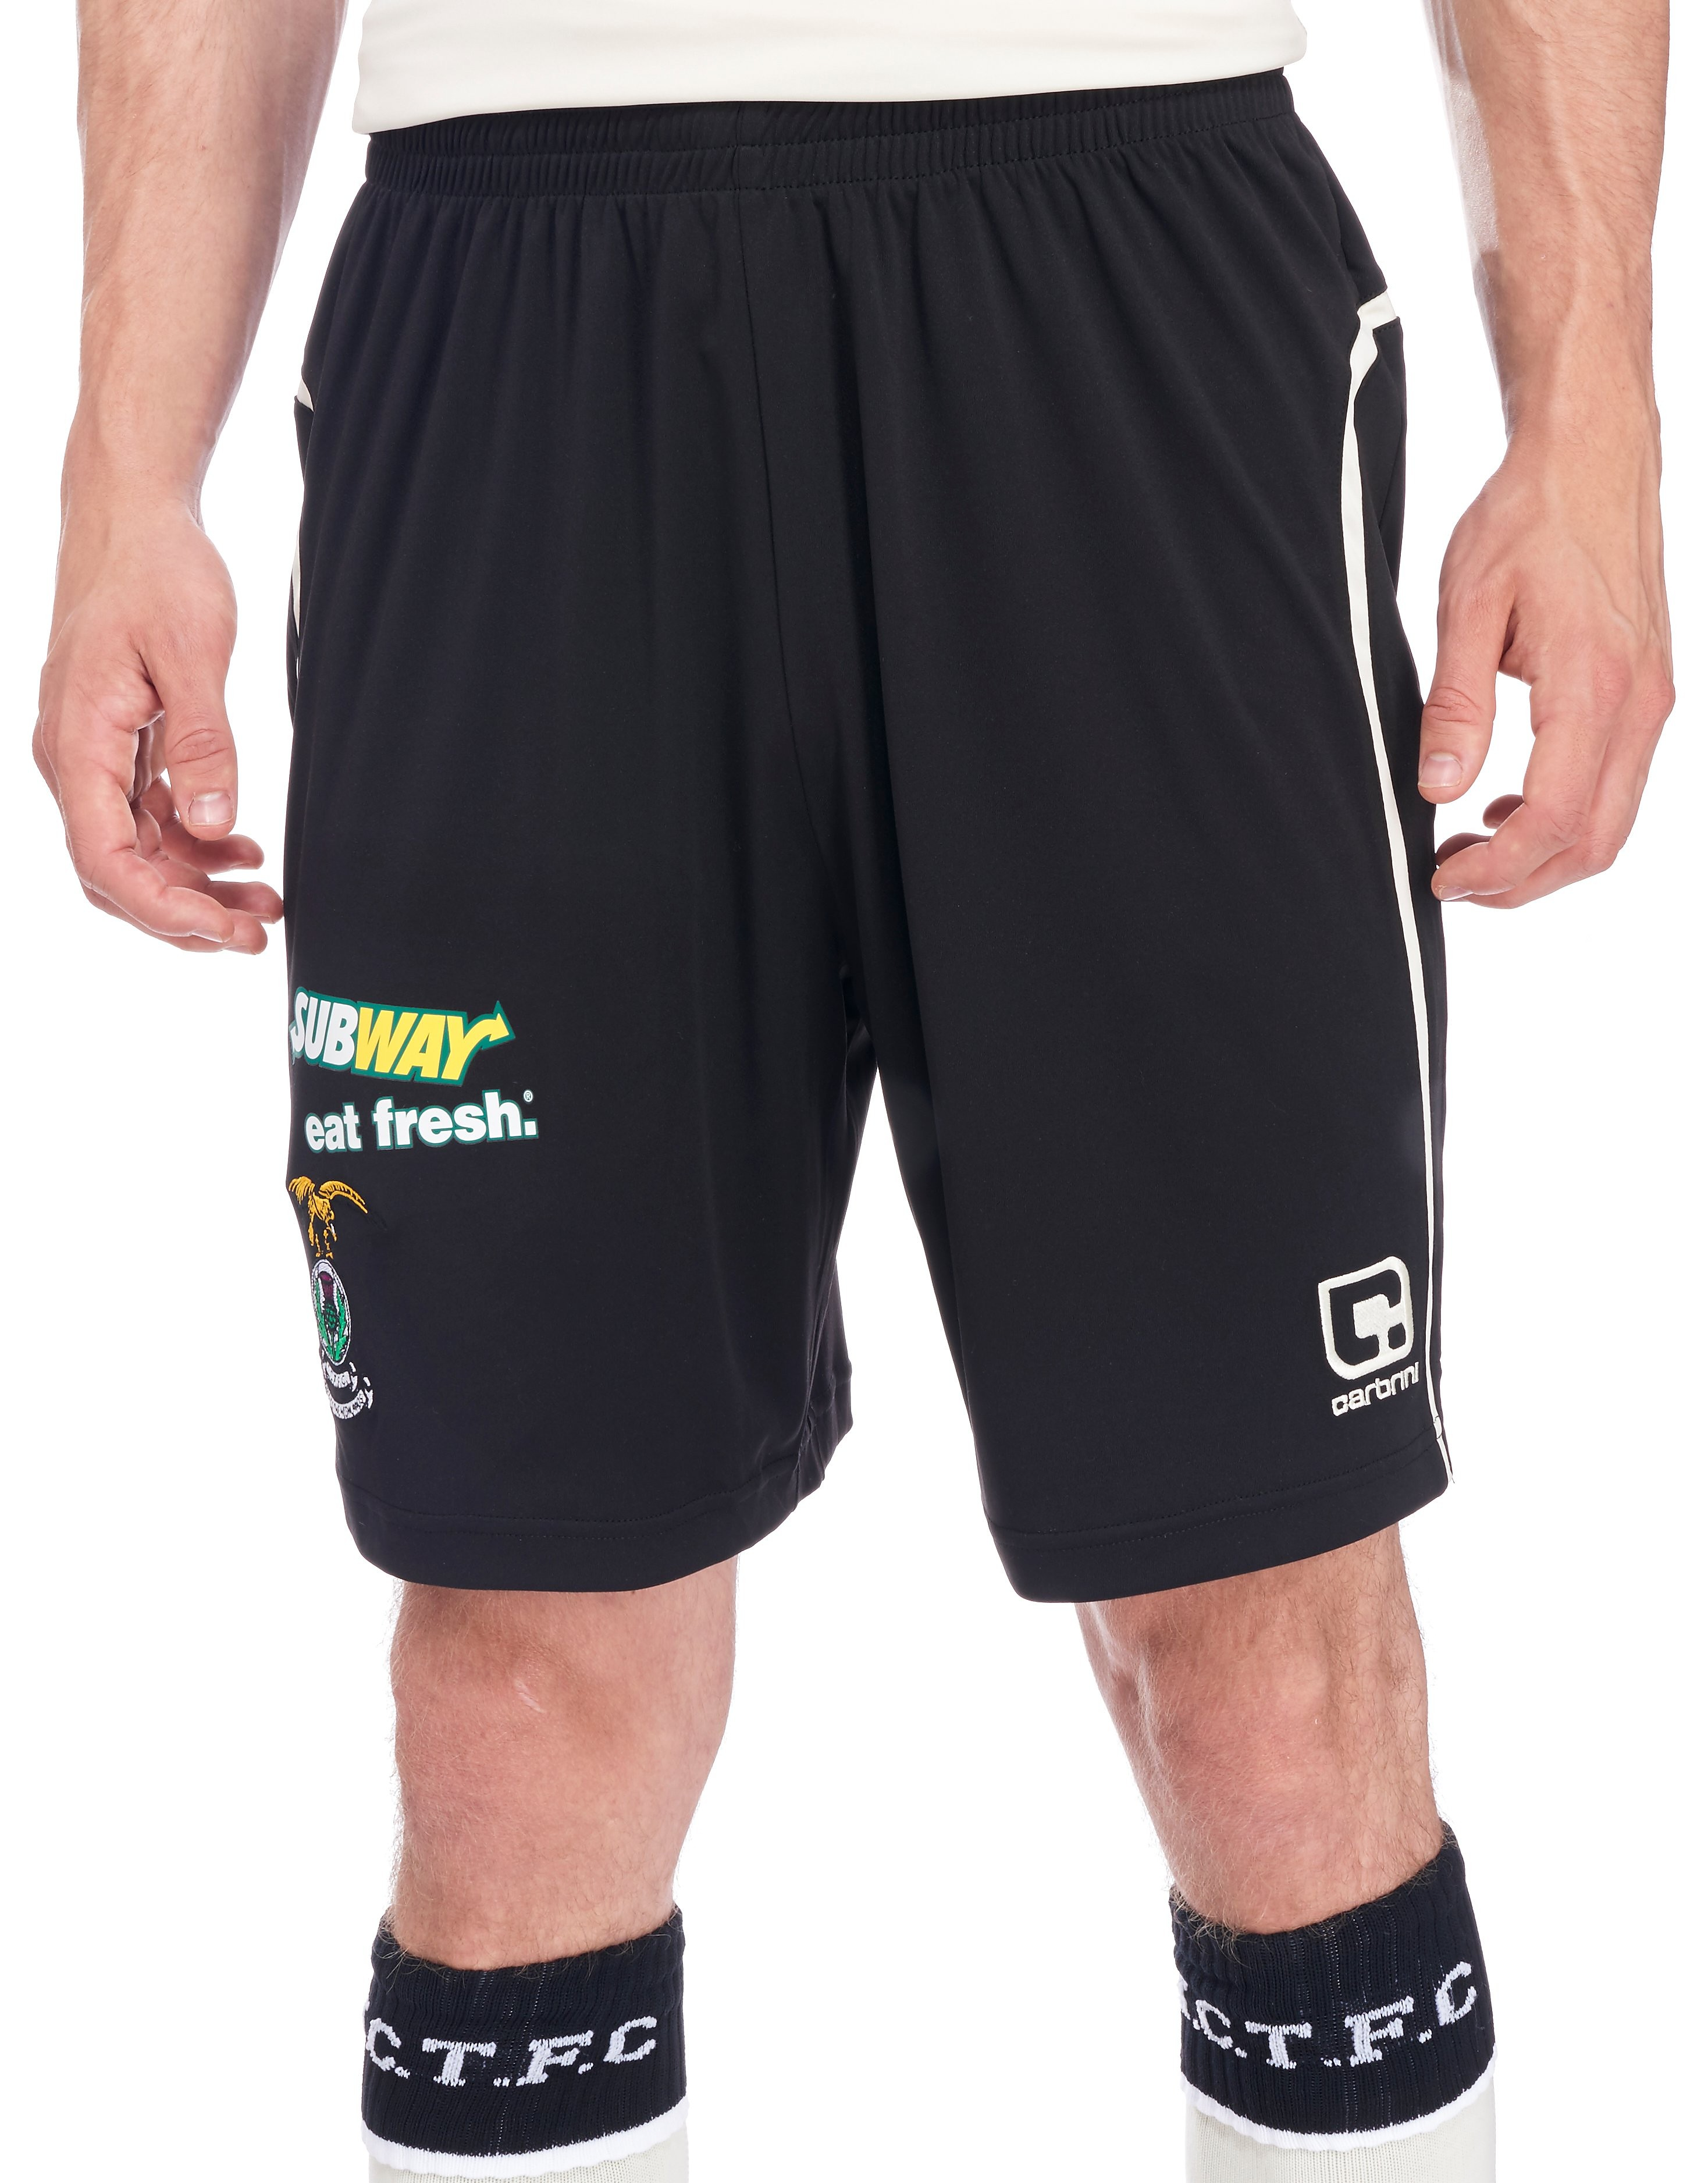 Carbrini Inverness CT 2016/17 Away Shorts